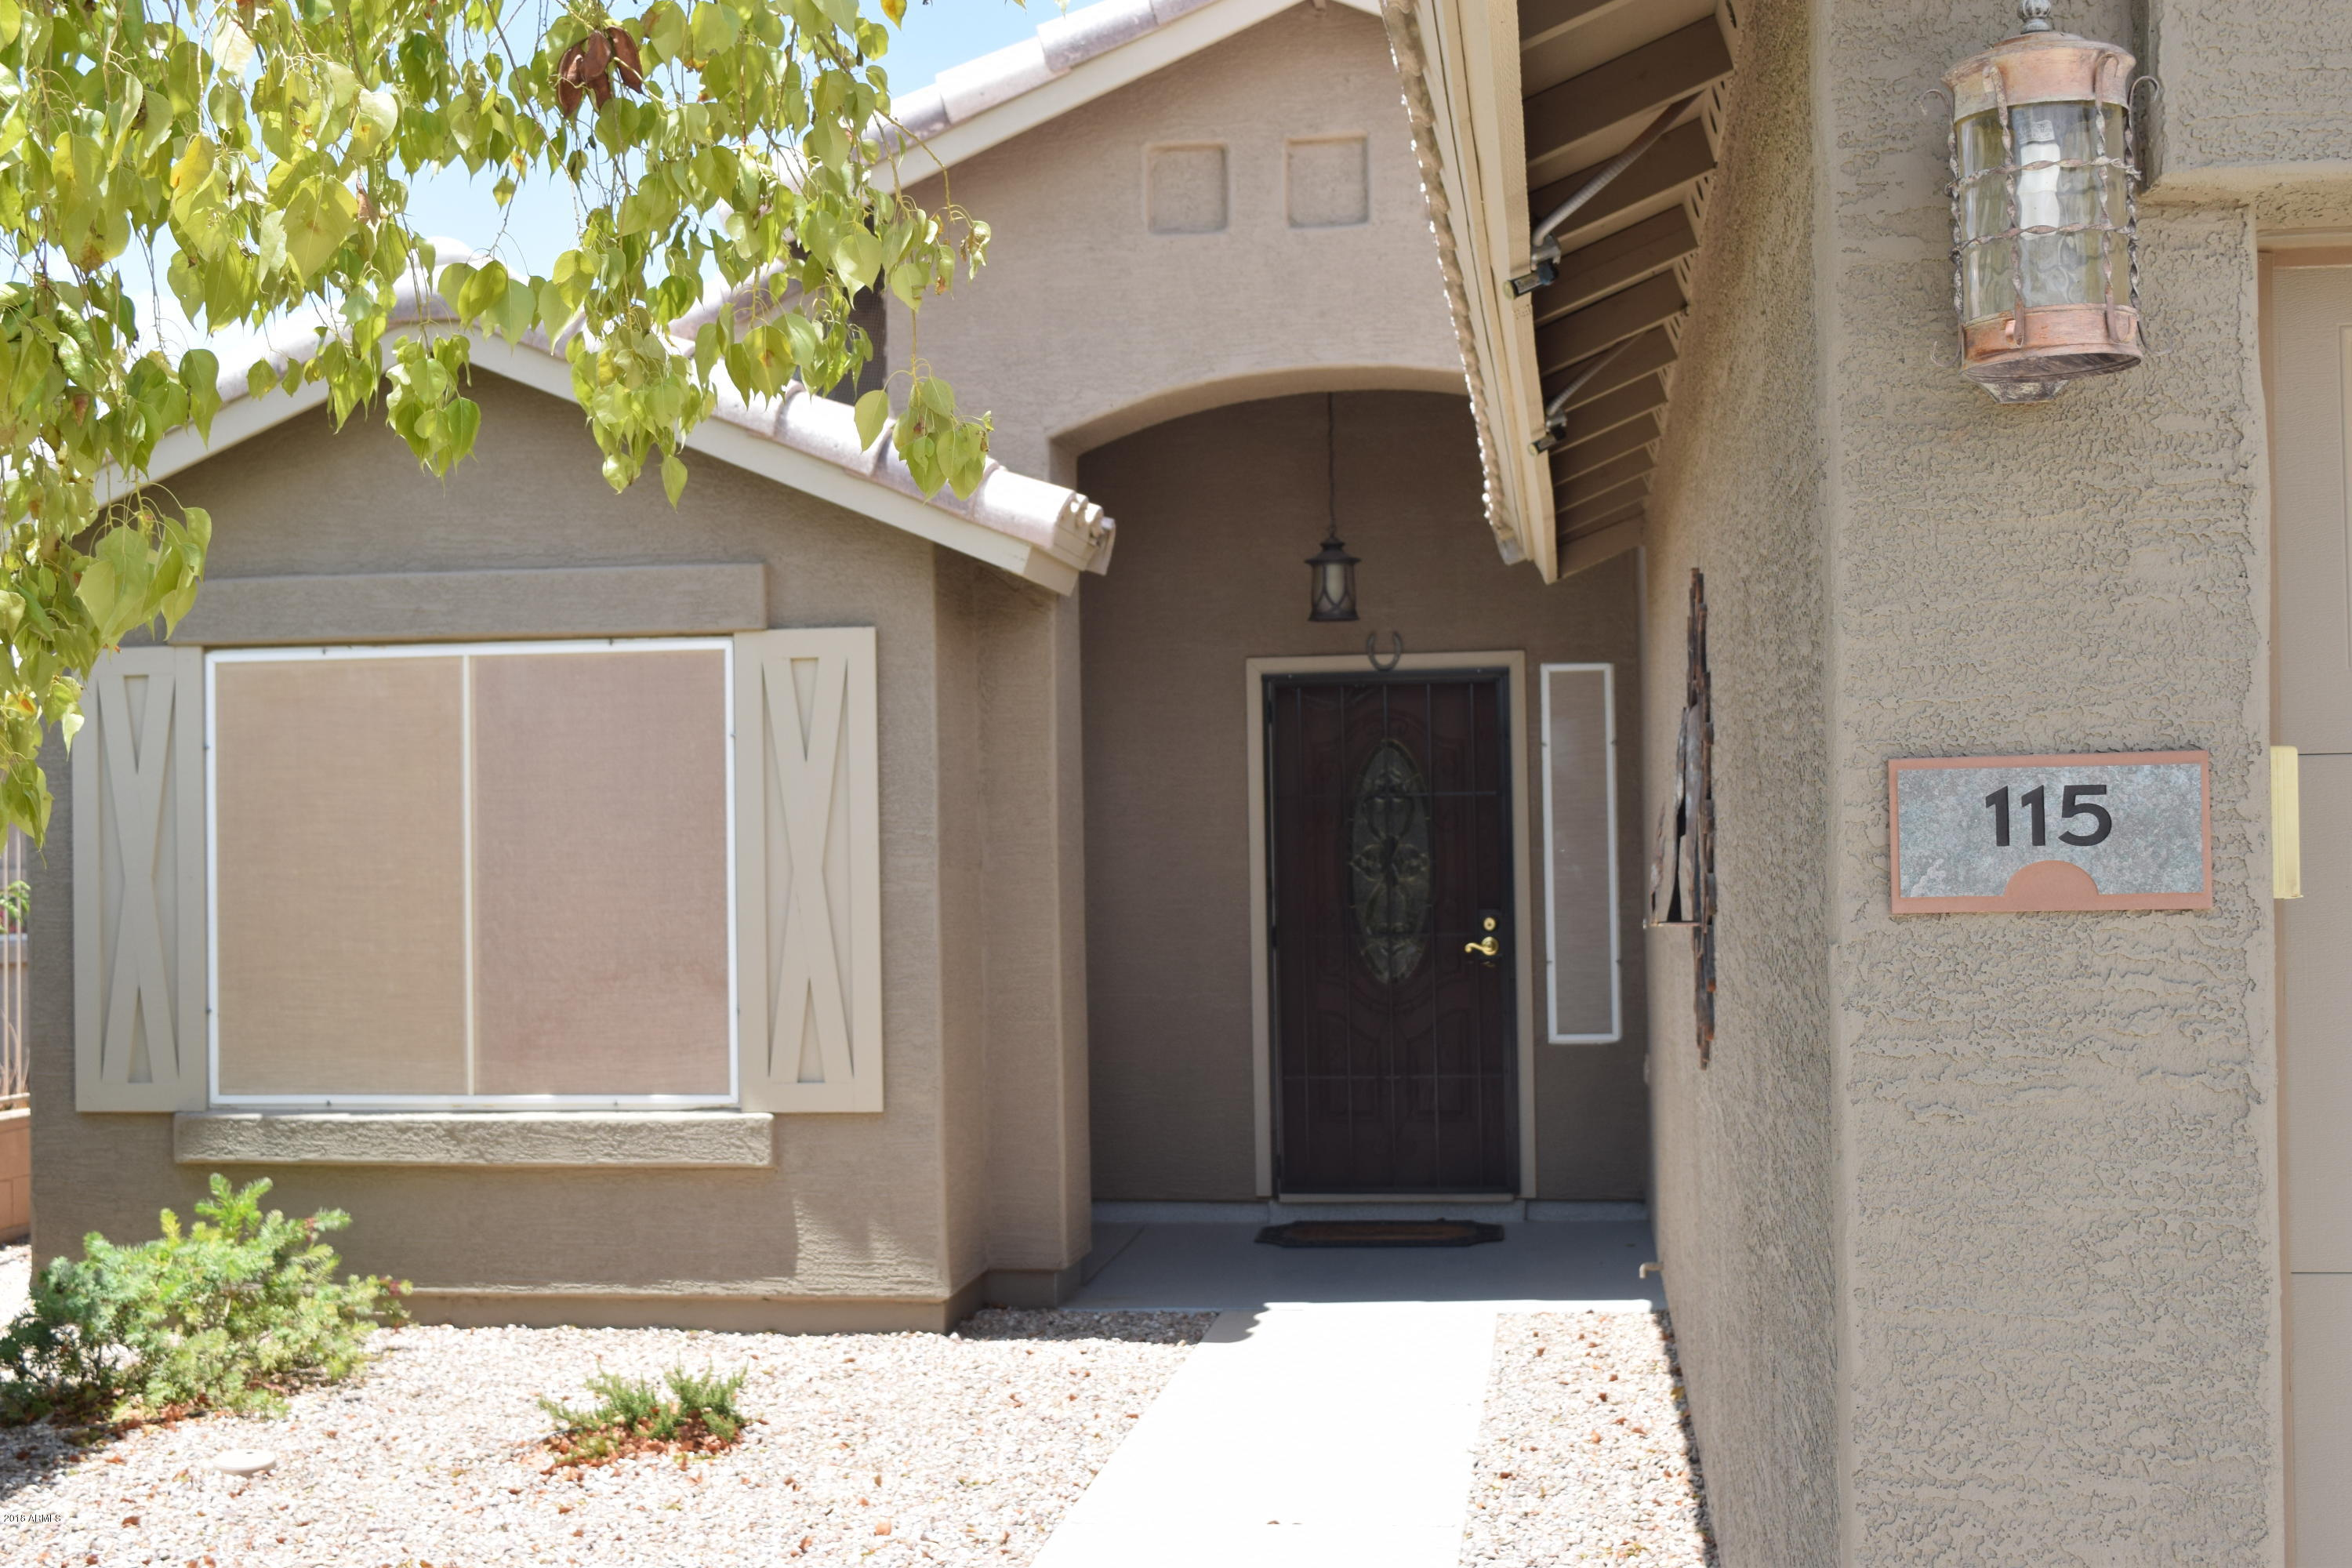 Photo for 115 S Birdie Way, Casa Grande, AZ 85194 (MLS # 5790144)